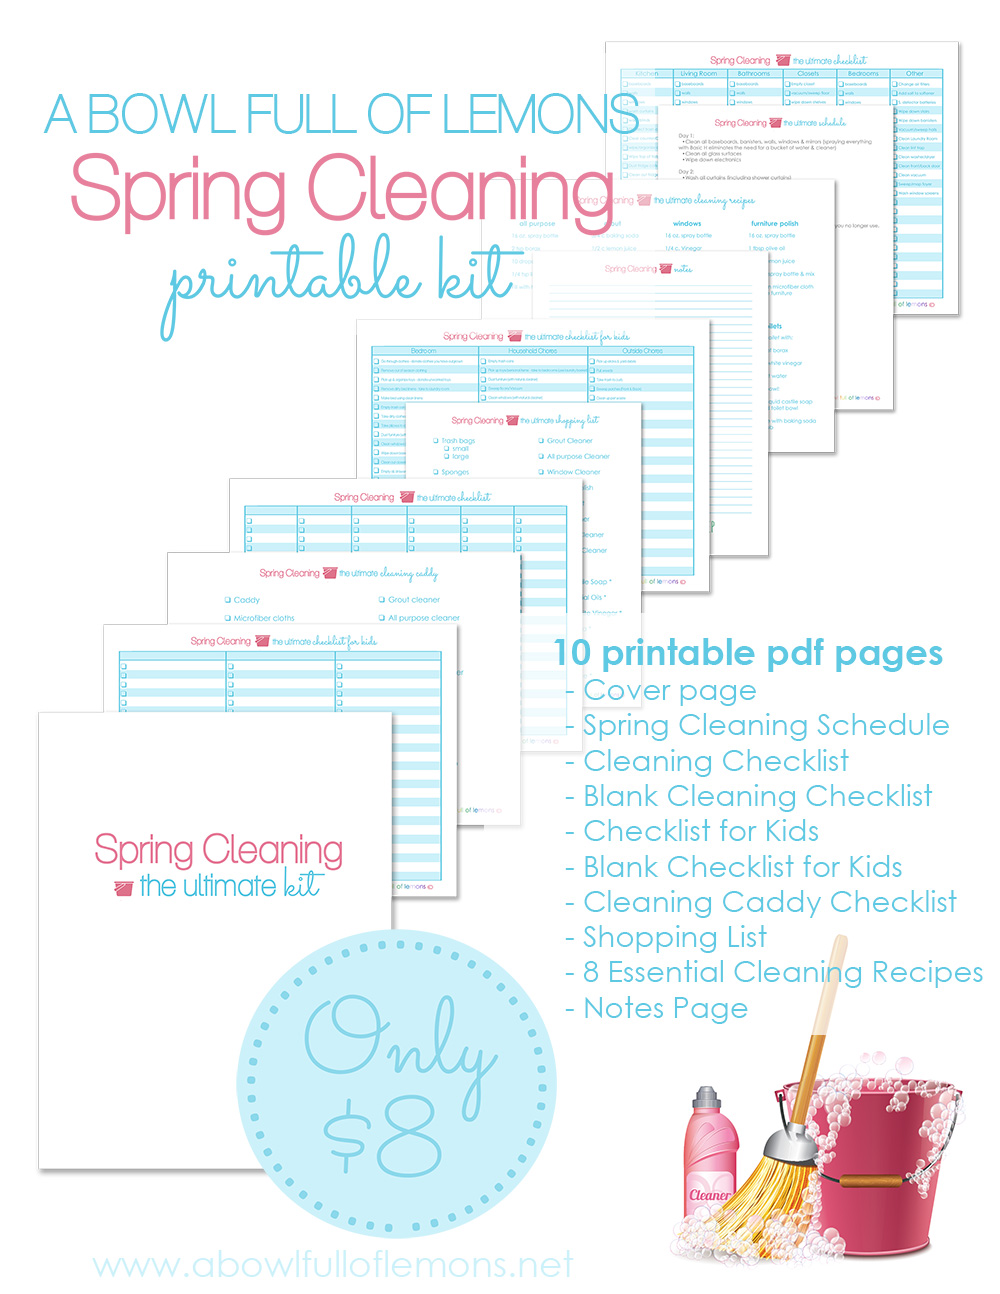 The ultimate spring cleaning plan a bowl full of lemons What month is spring cleaning